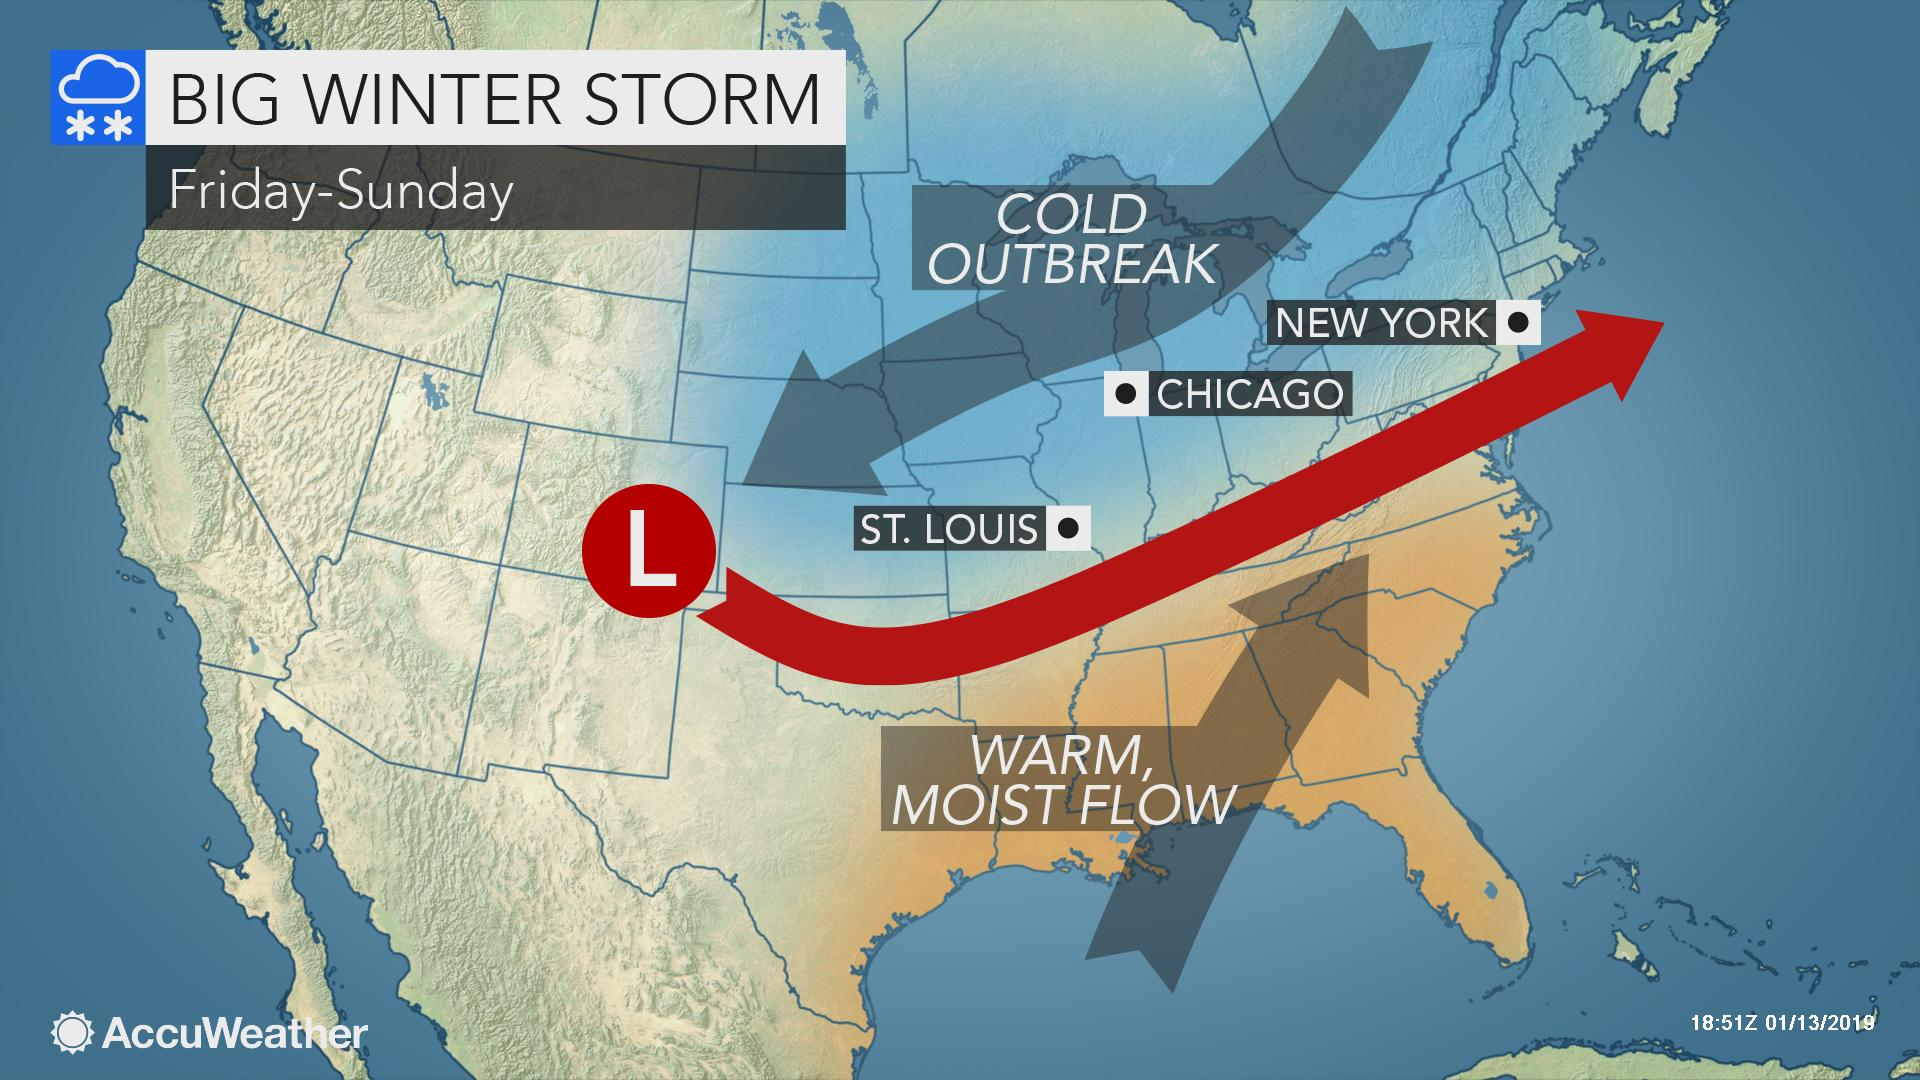 Eastern, central US to face more winter storms, polar plunge after calmer first half of this week